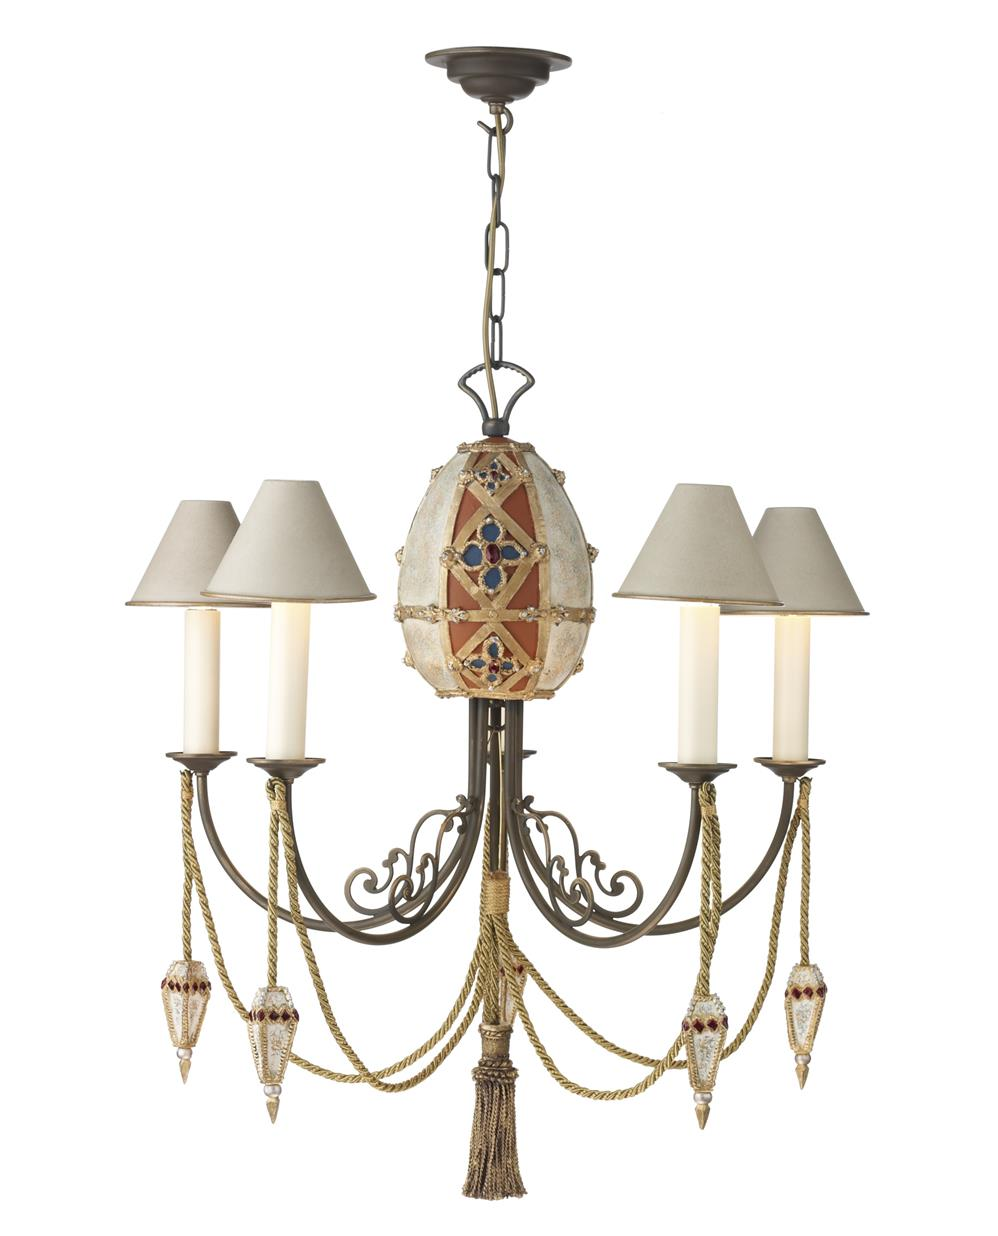 Dar AF05 Anastasia 5 light Chandelier. Fitting only